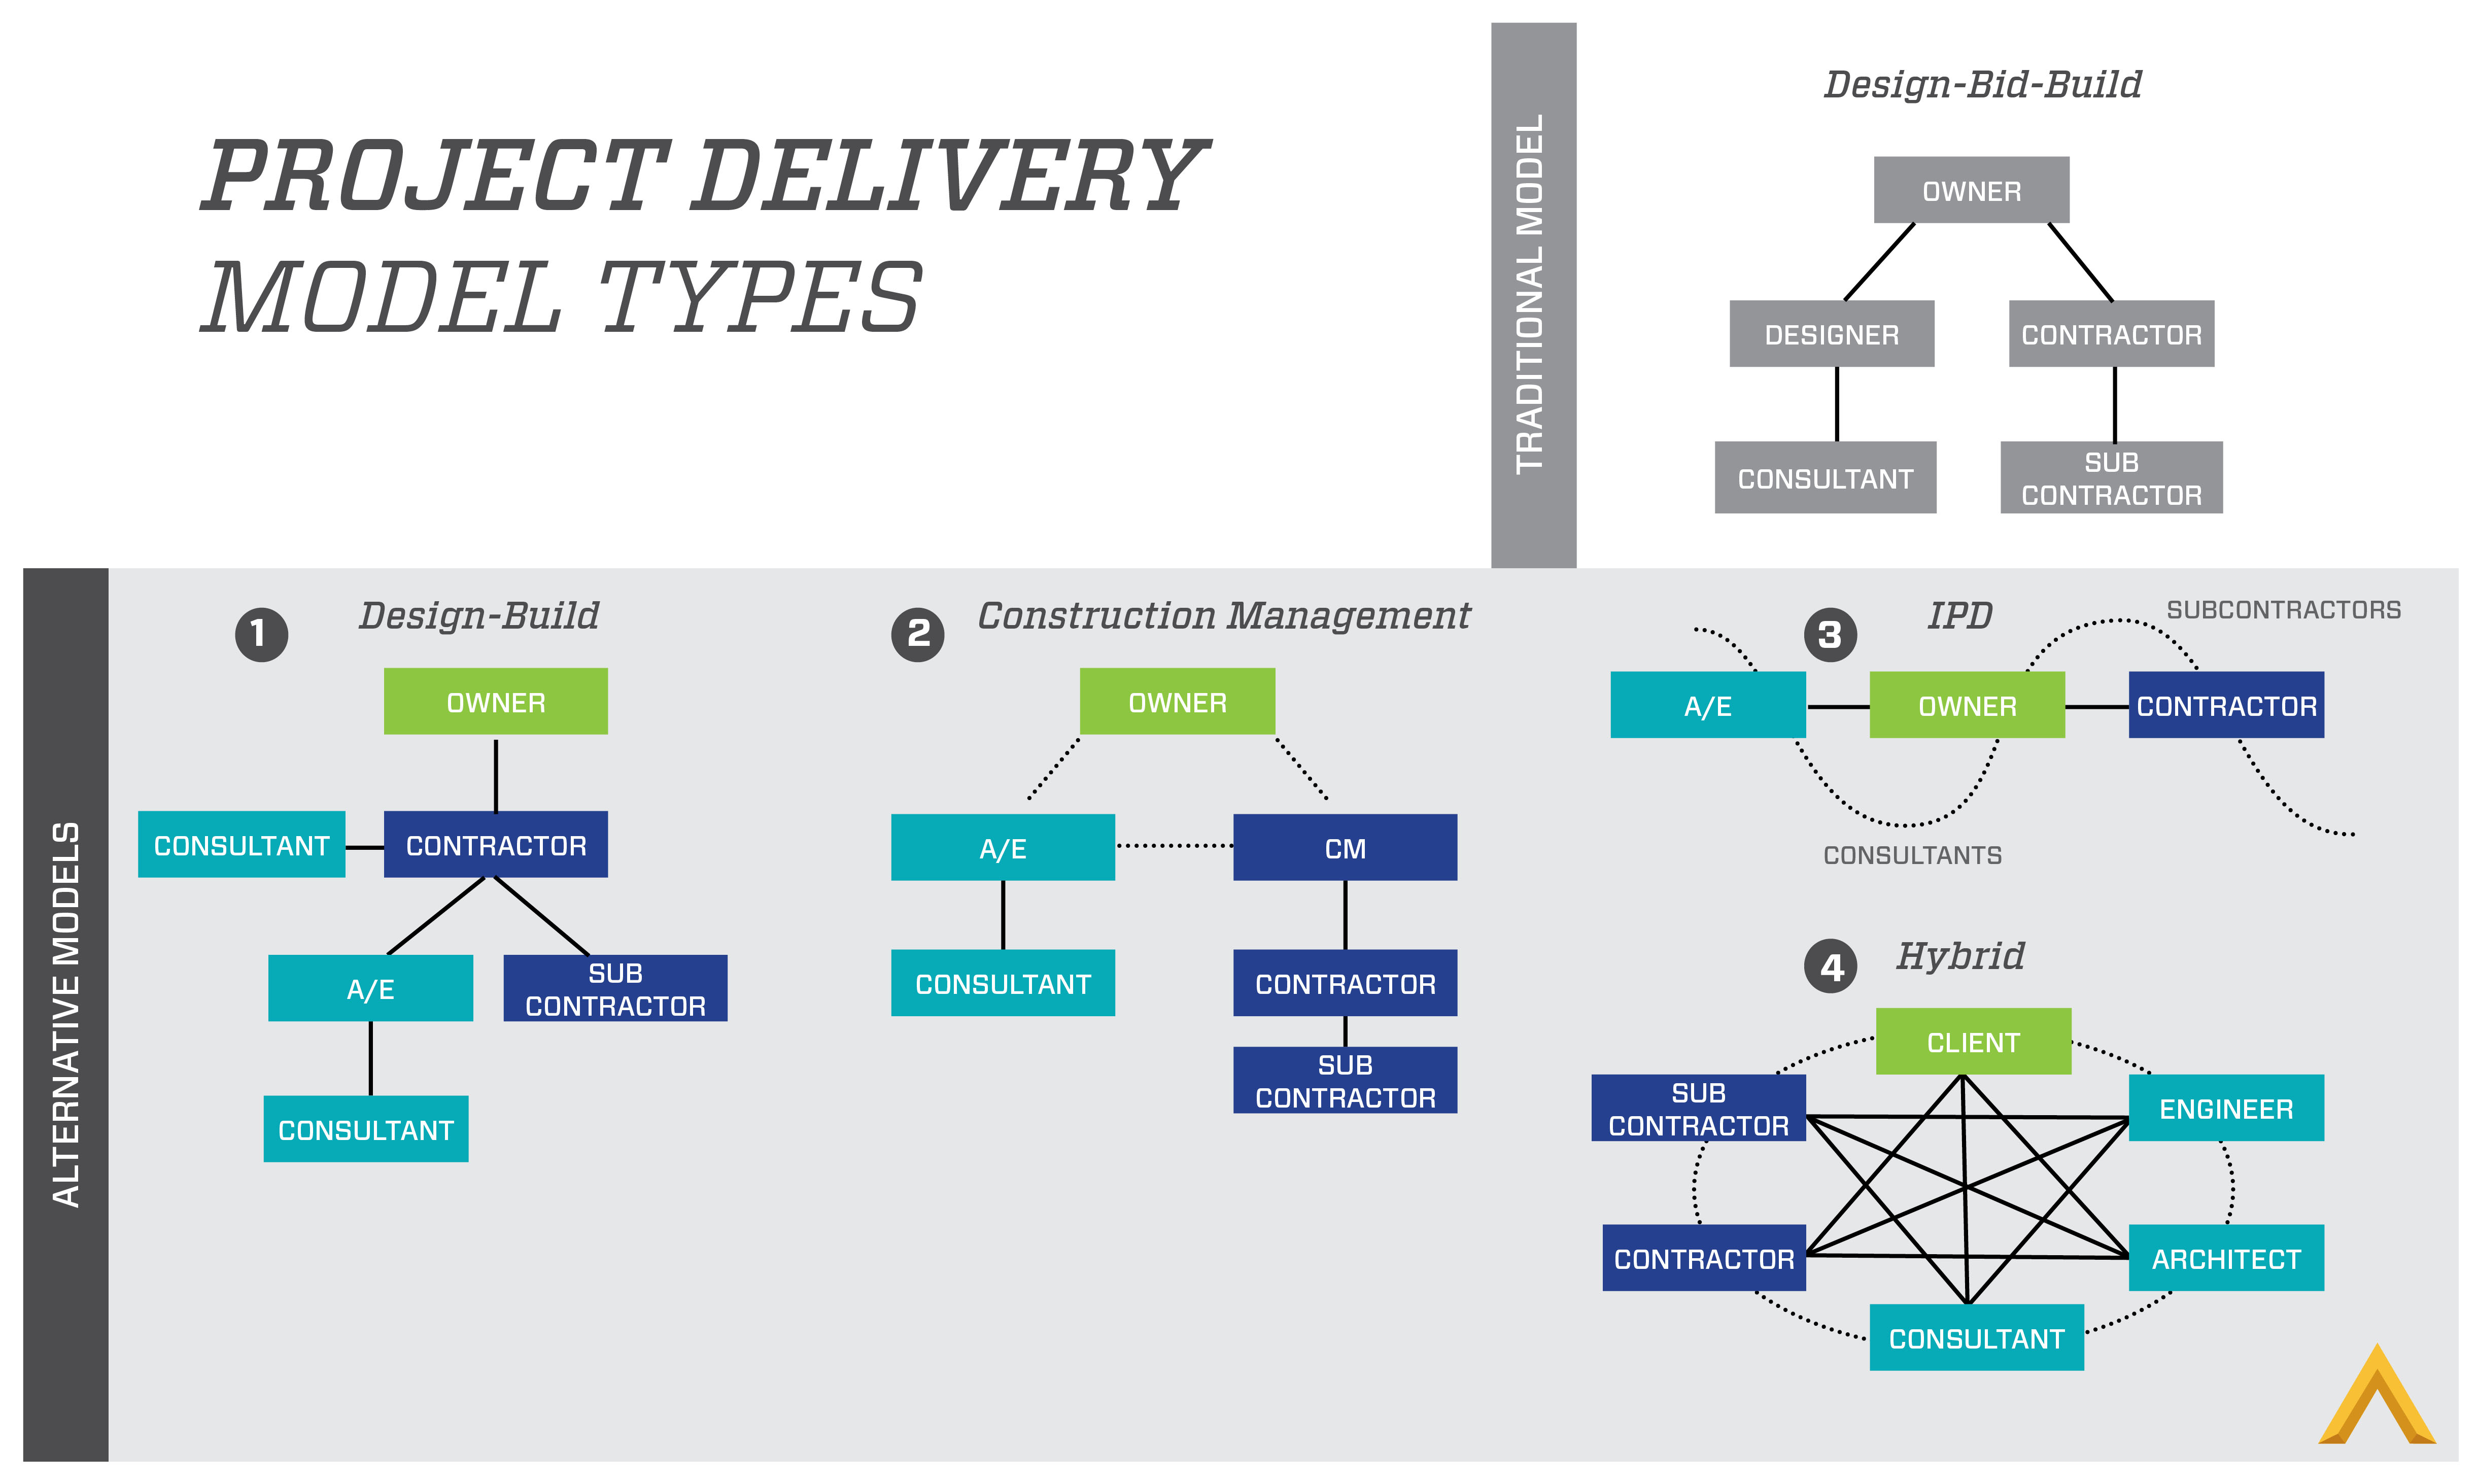 Project Delivery Model Types